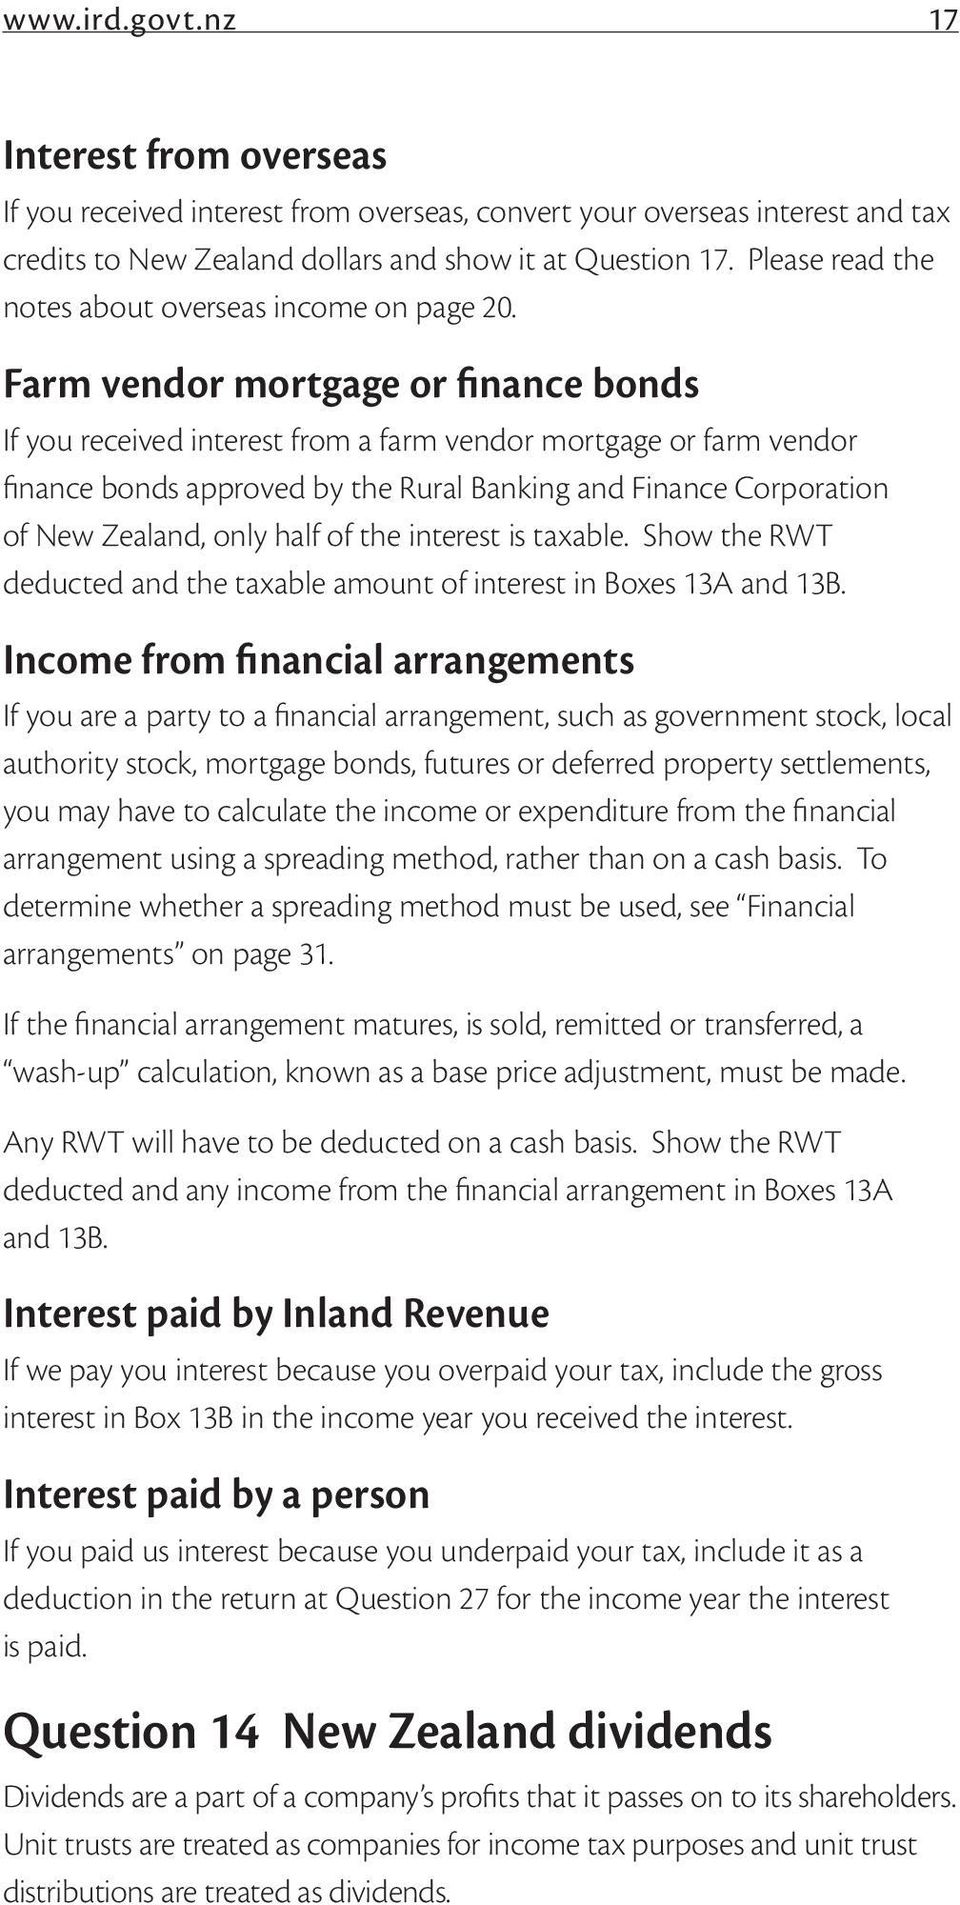 Farm vendor mortgage or finance bonds If you received interest from a farm vendor mortgage or farm vendor finance bonds approved by the Rural Banking and Finance Corporation of New Zealand, only half